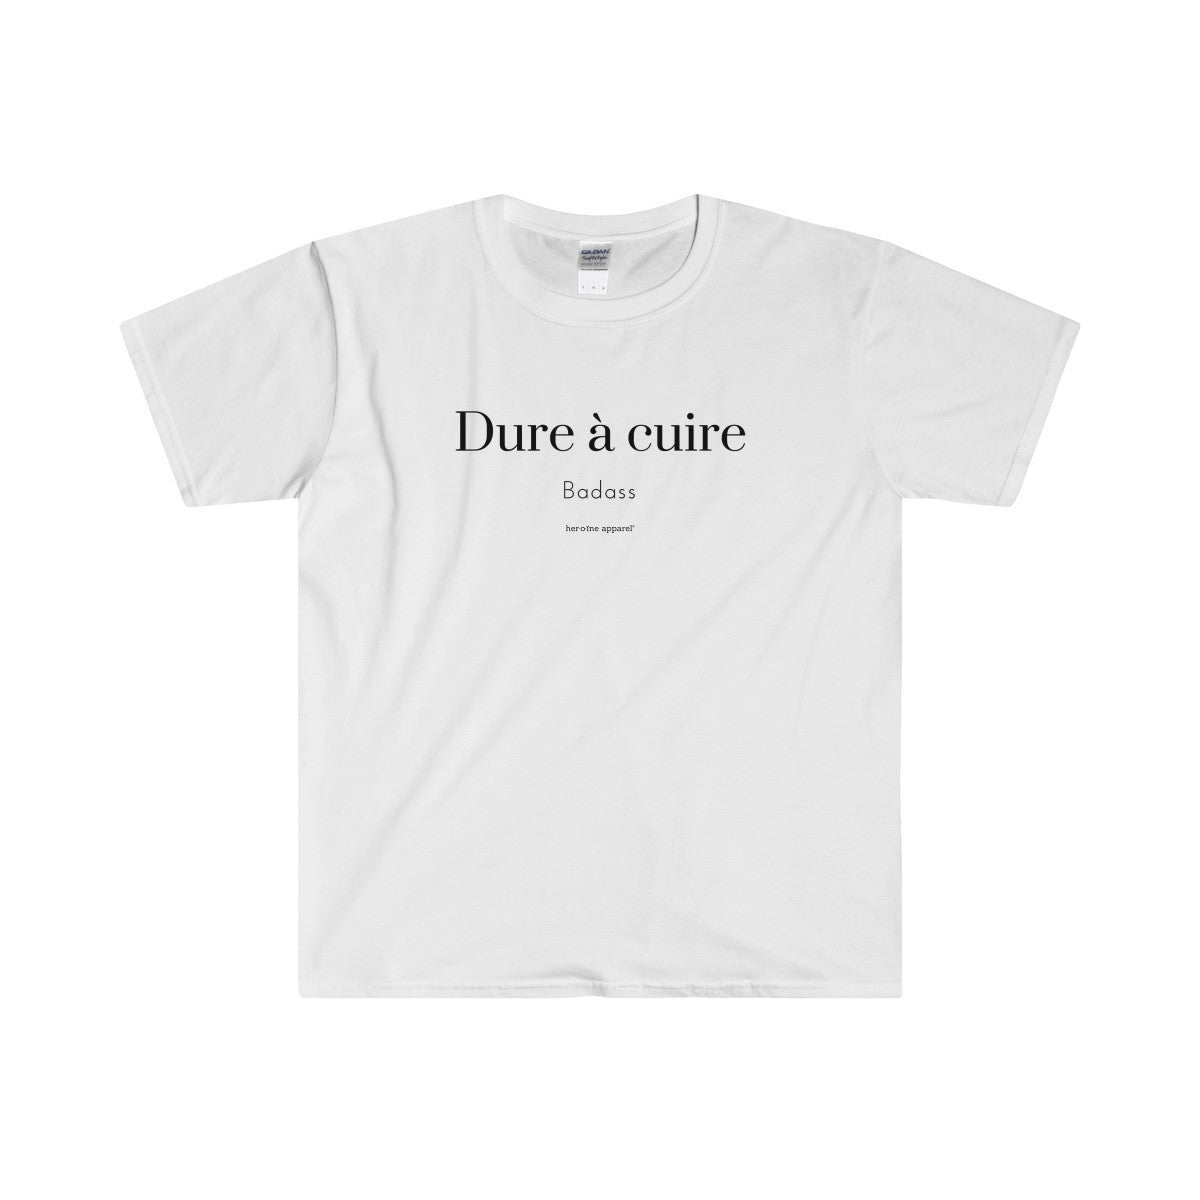 dure à cuire badass t shirt french quote frenchie la france streetweardure à cuire badass t shirt french quote frenchie la france streetwear